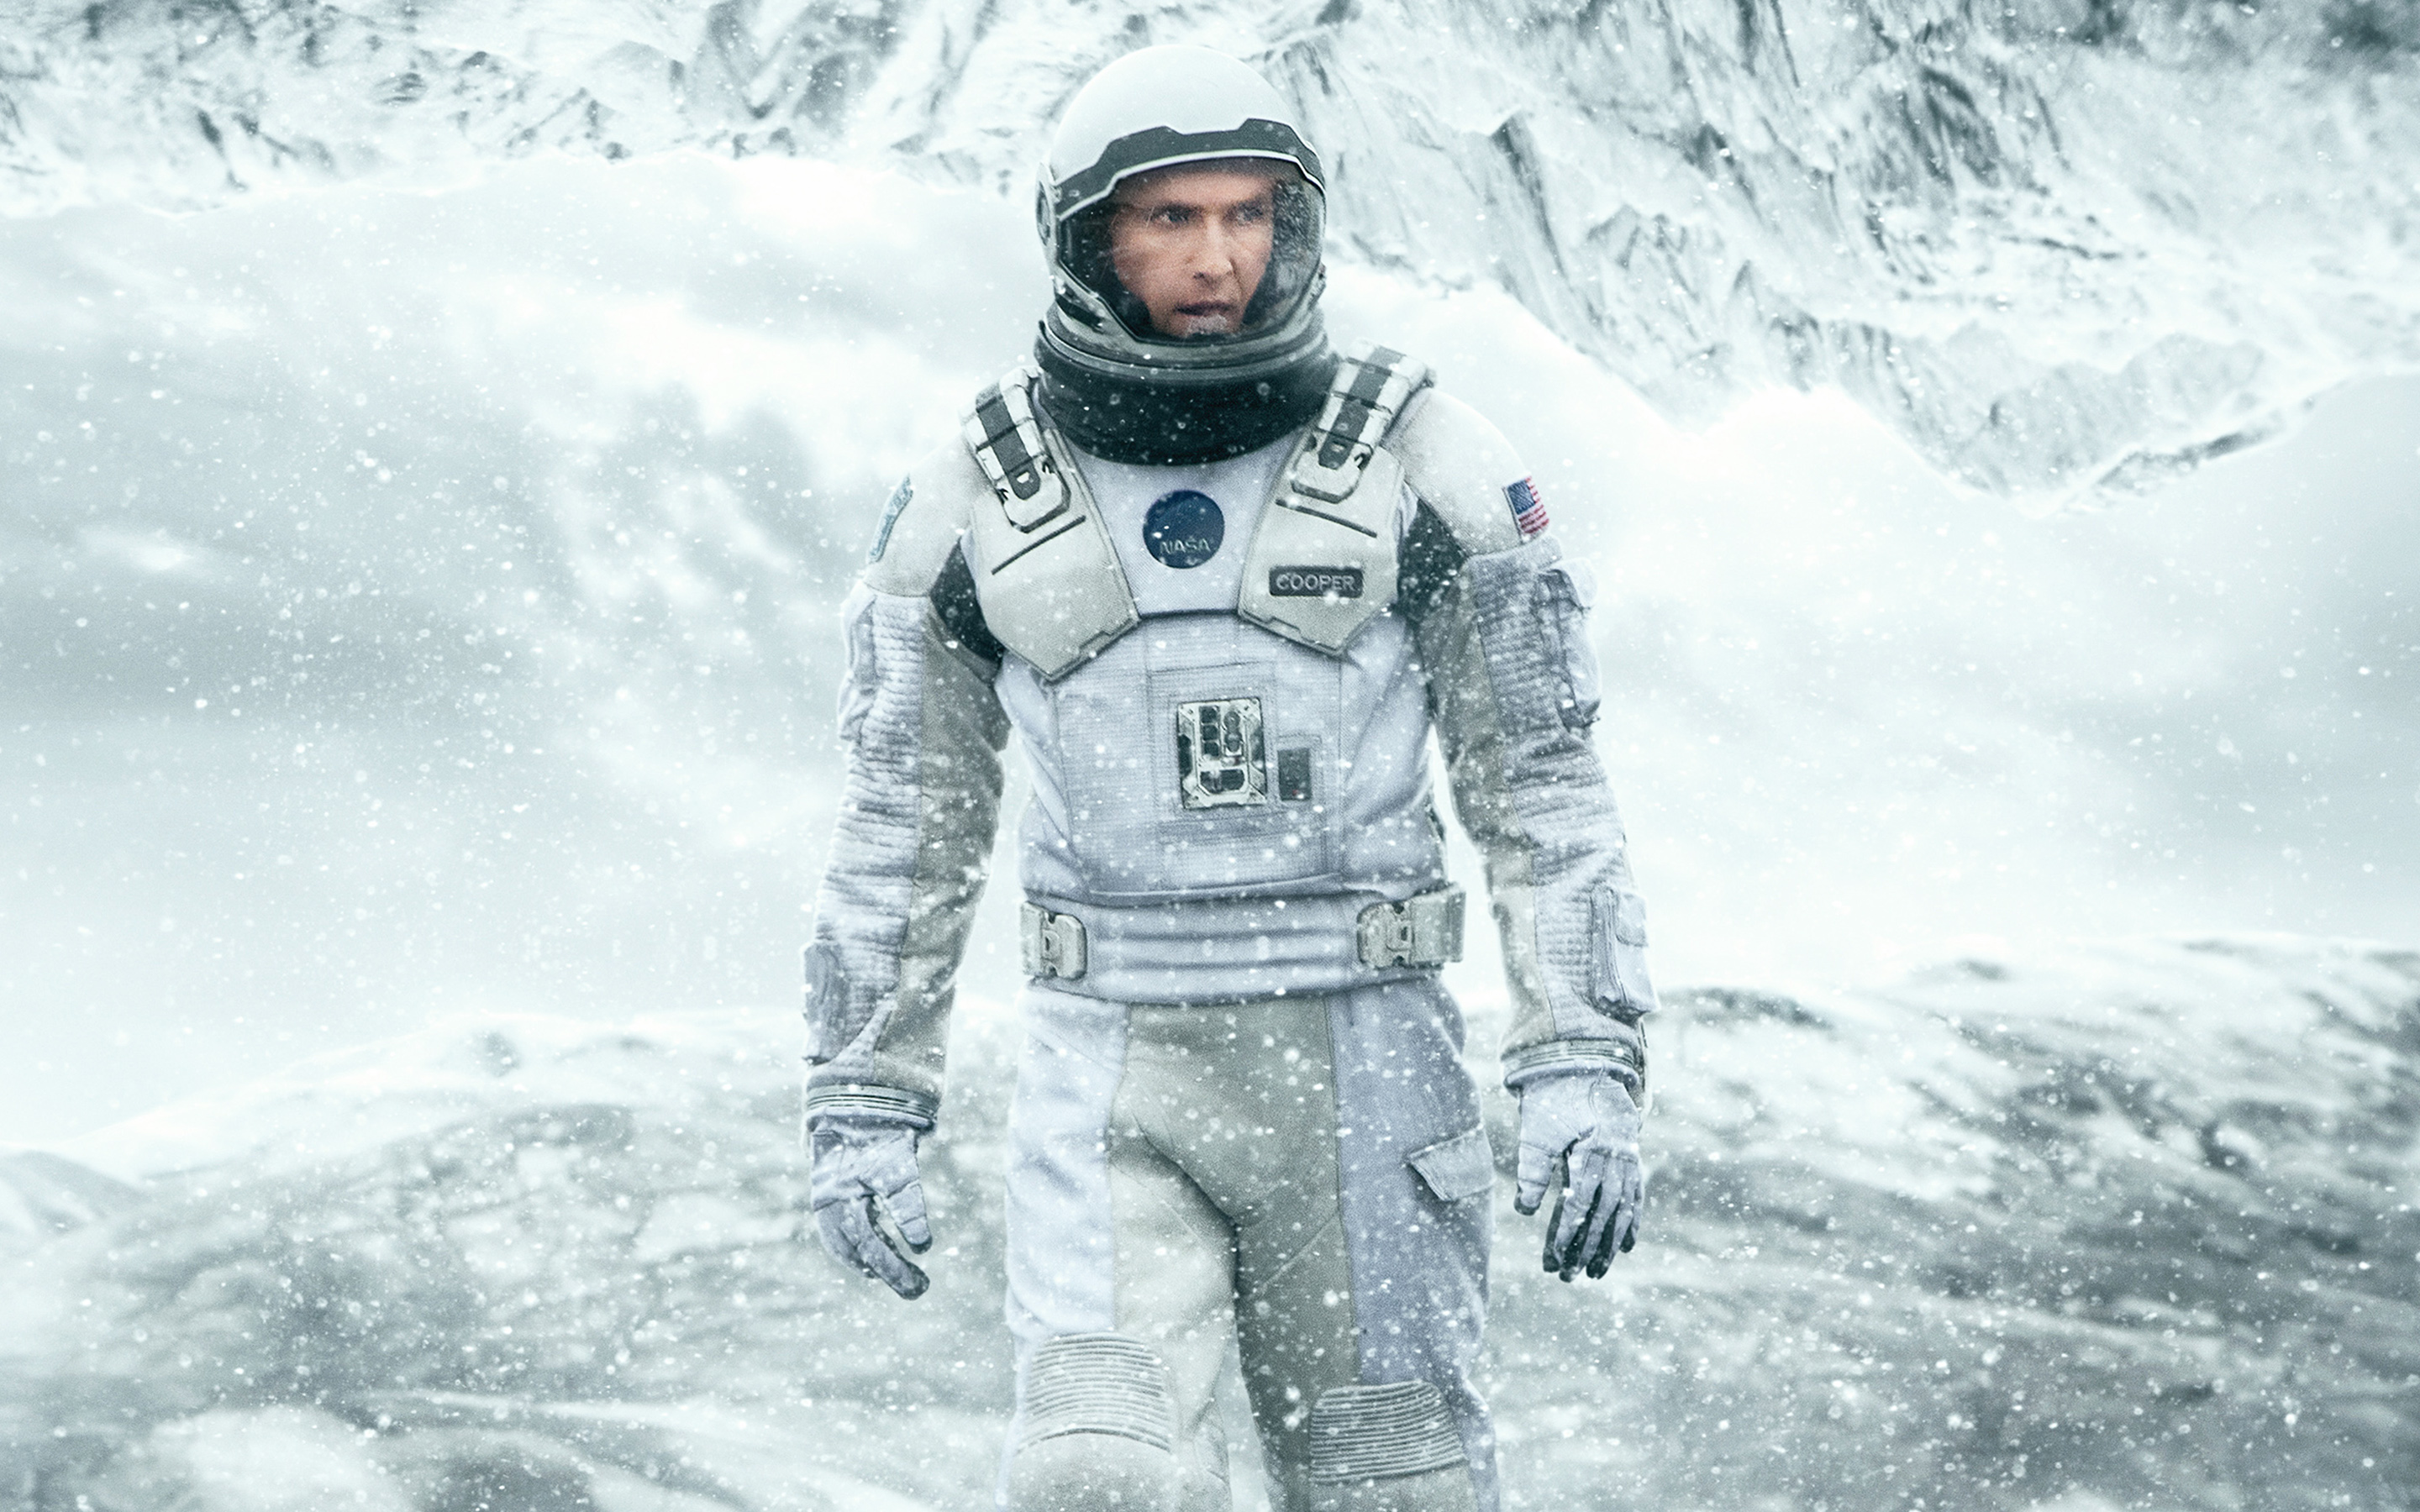 EPISODIO 6 – 'INTERSTELLAR'